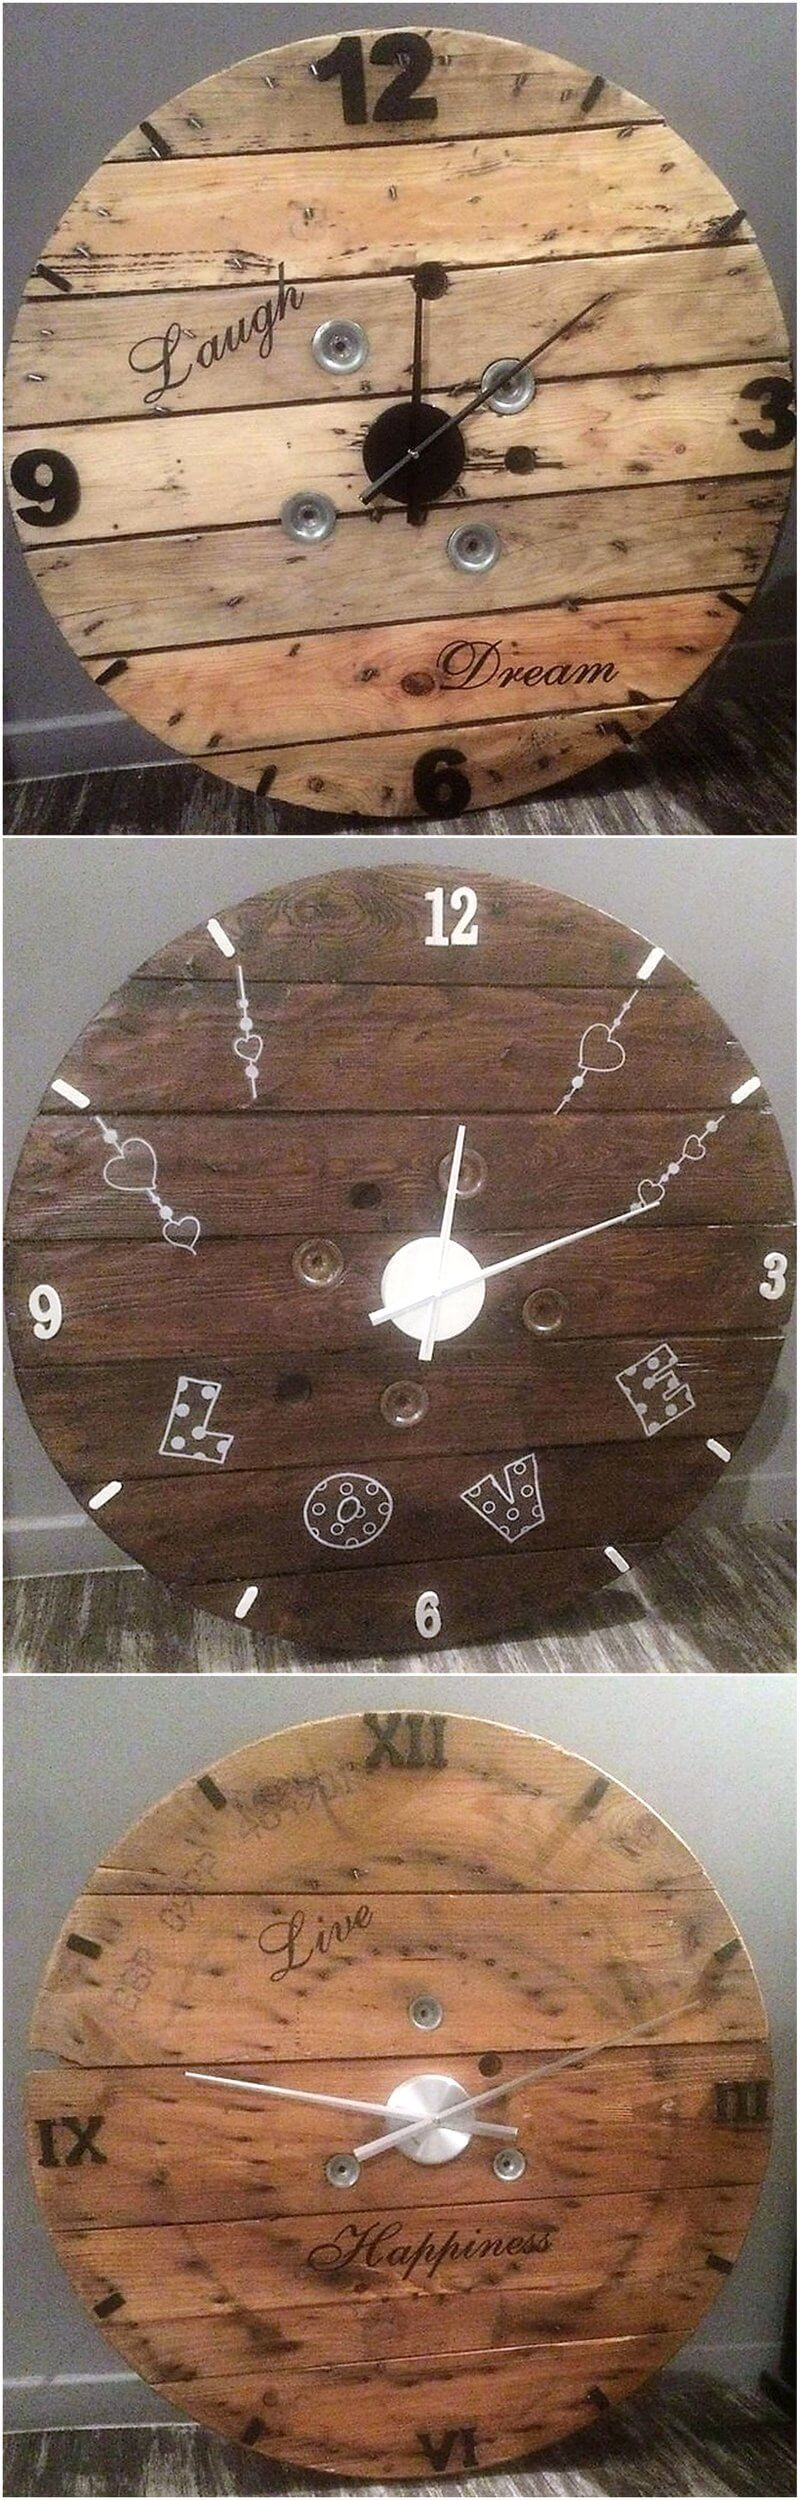 recycled pallets clock art